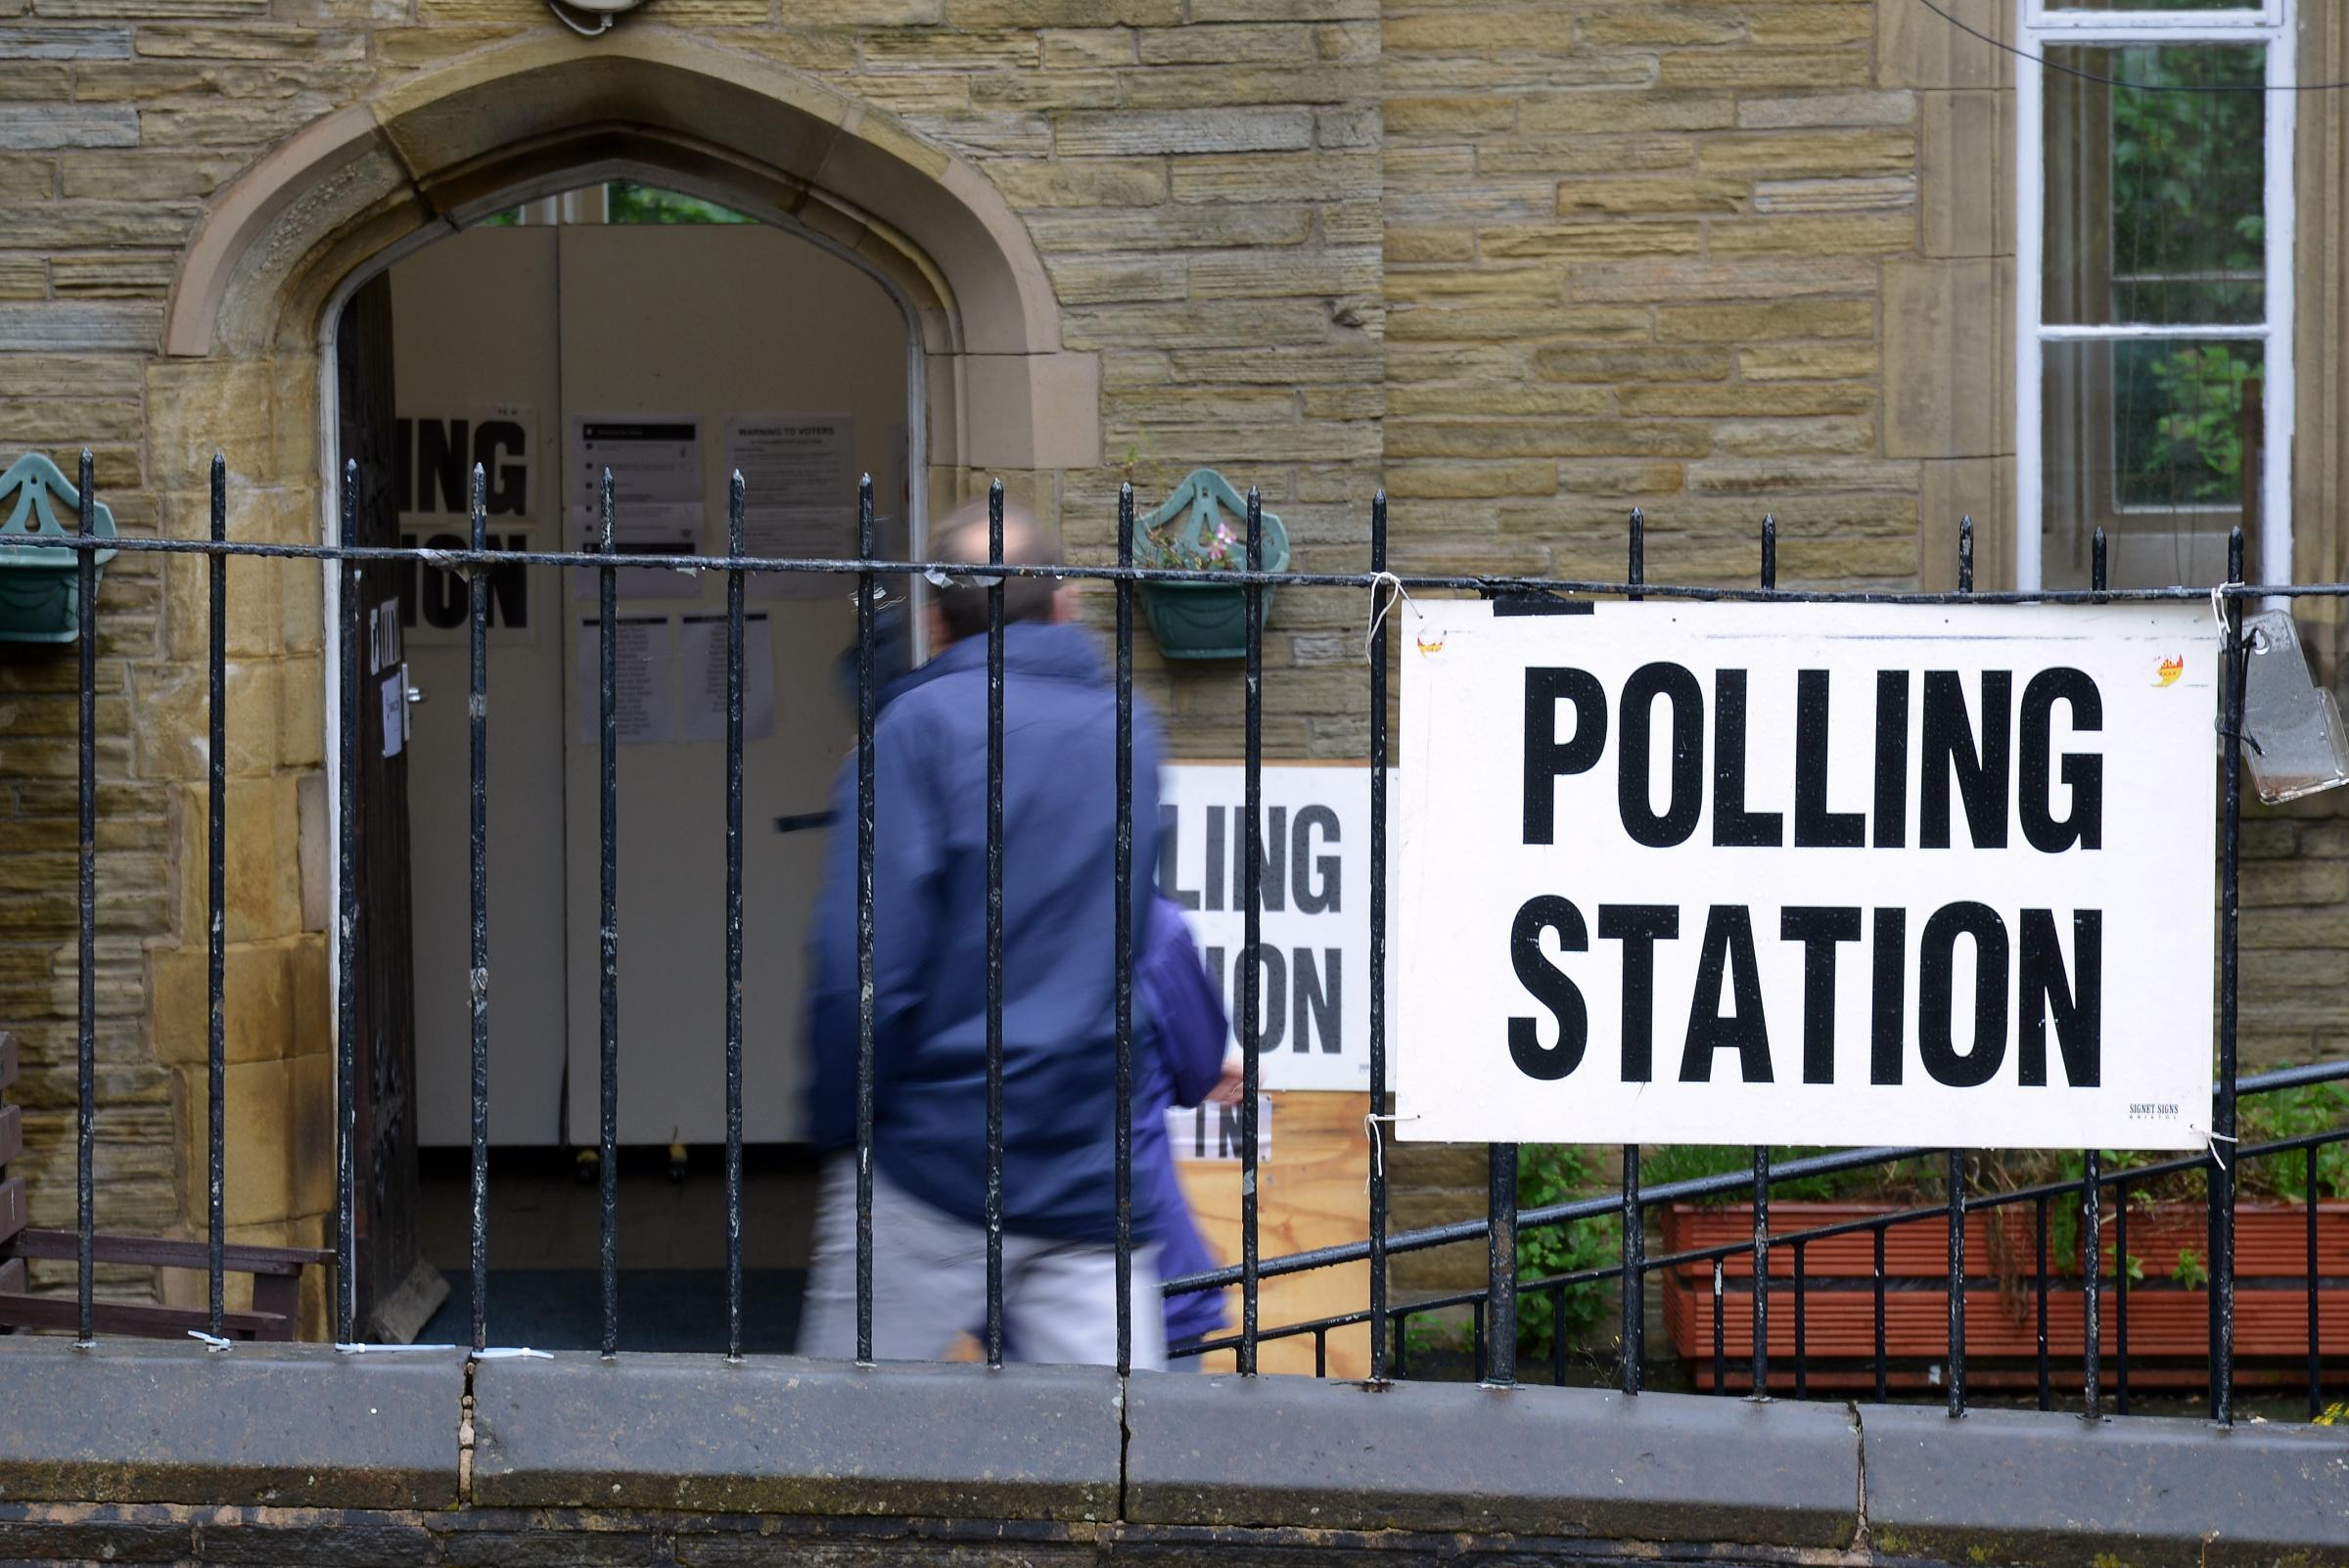 Voters arrive at a polling station in Shipley